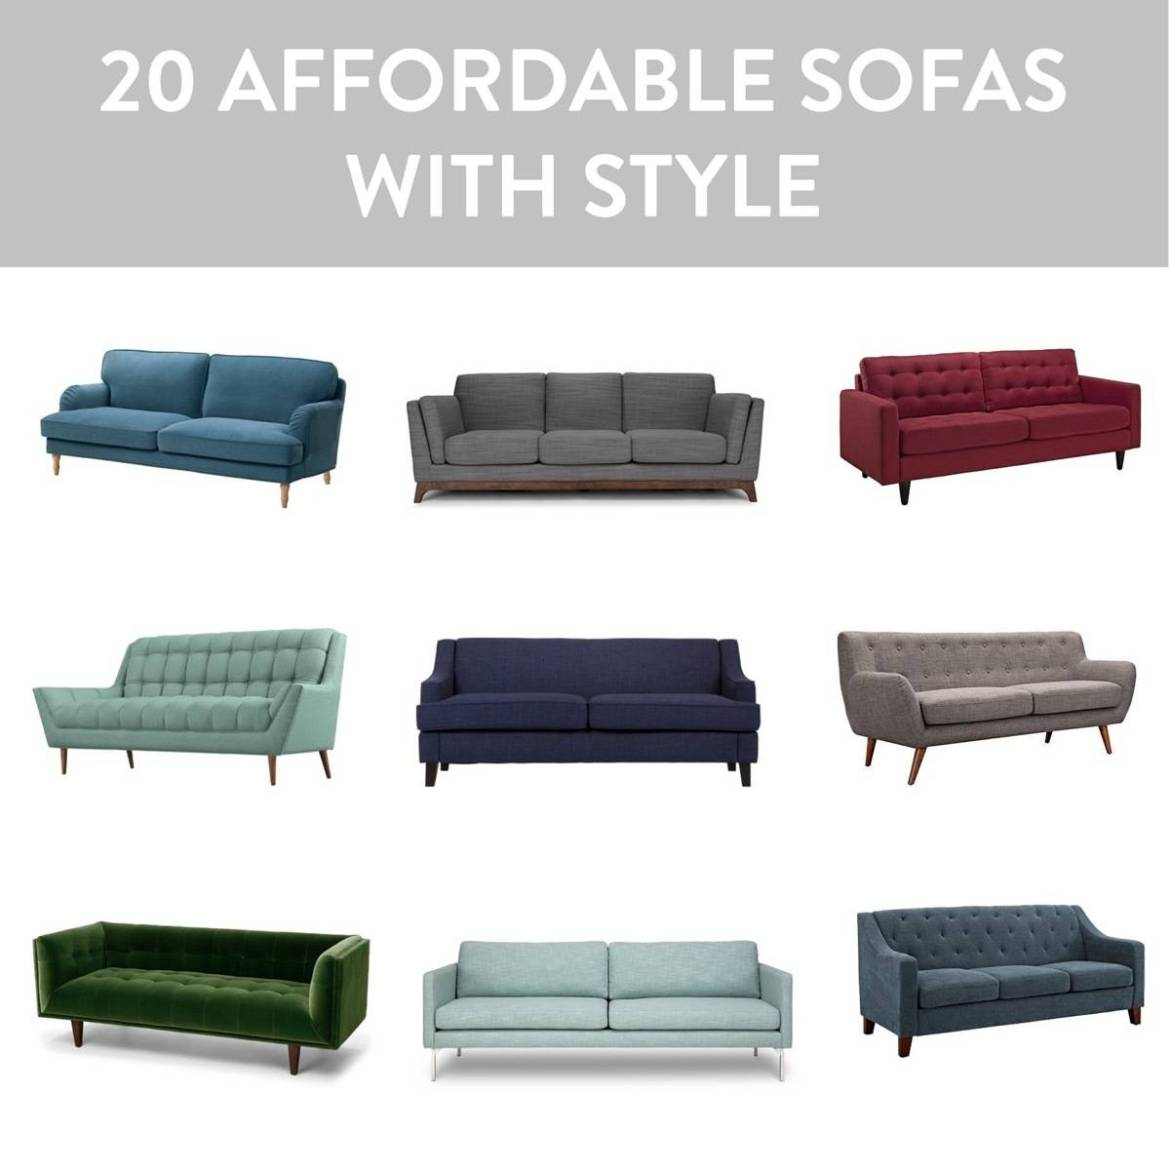 20 couches that won't break the bank!